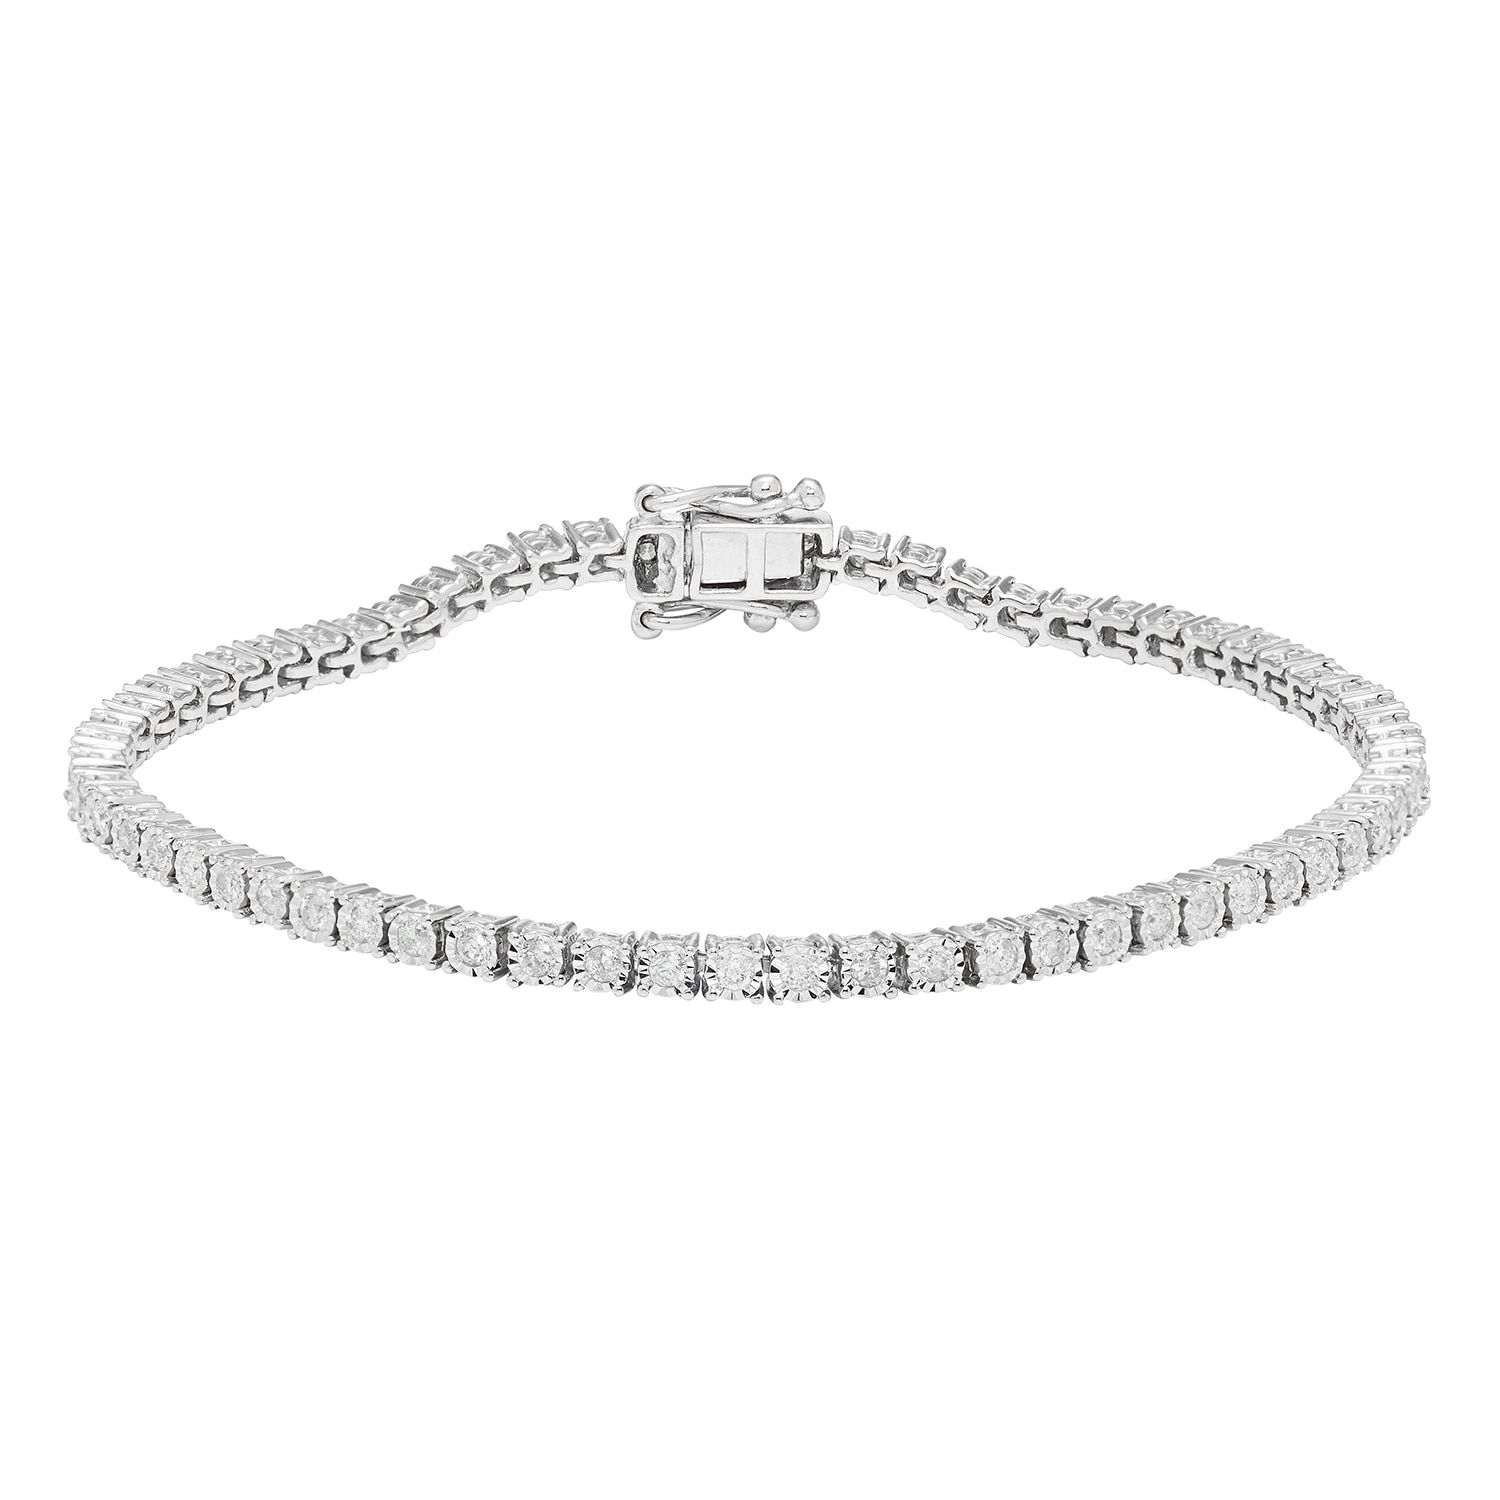 Sofia k white gold ct tdw diamond tennis bracelet hi i